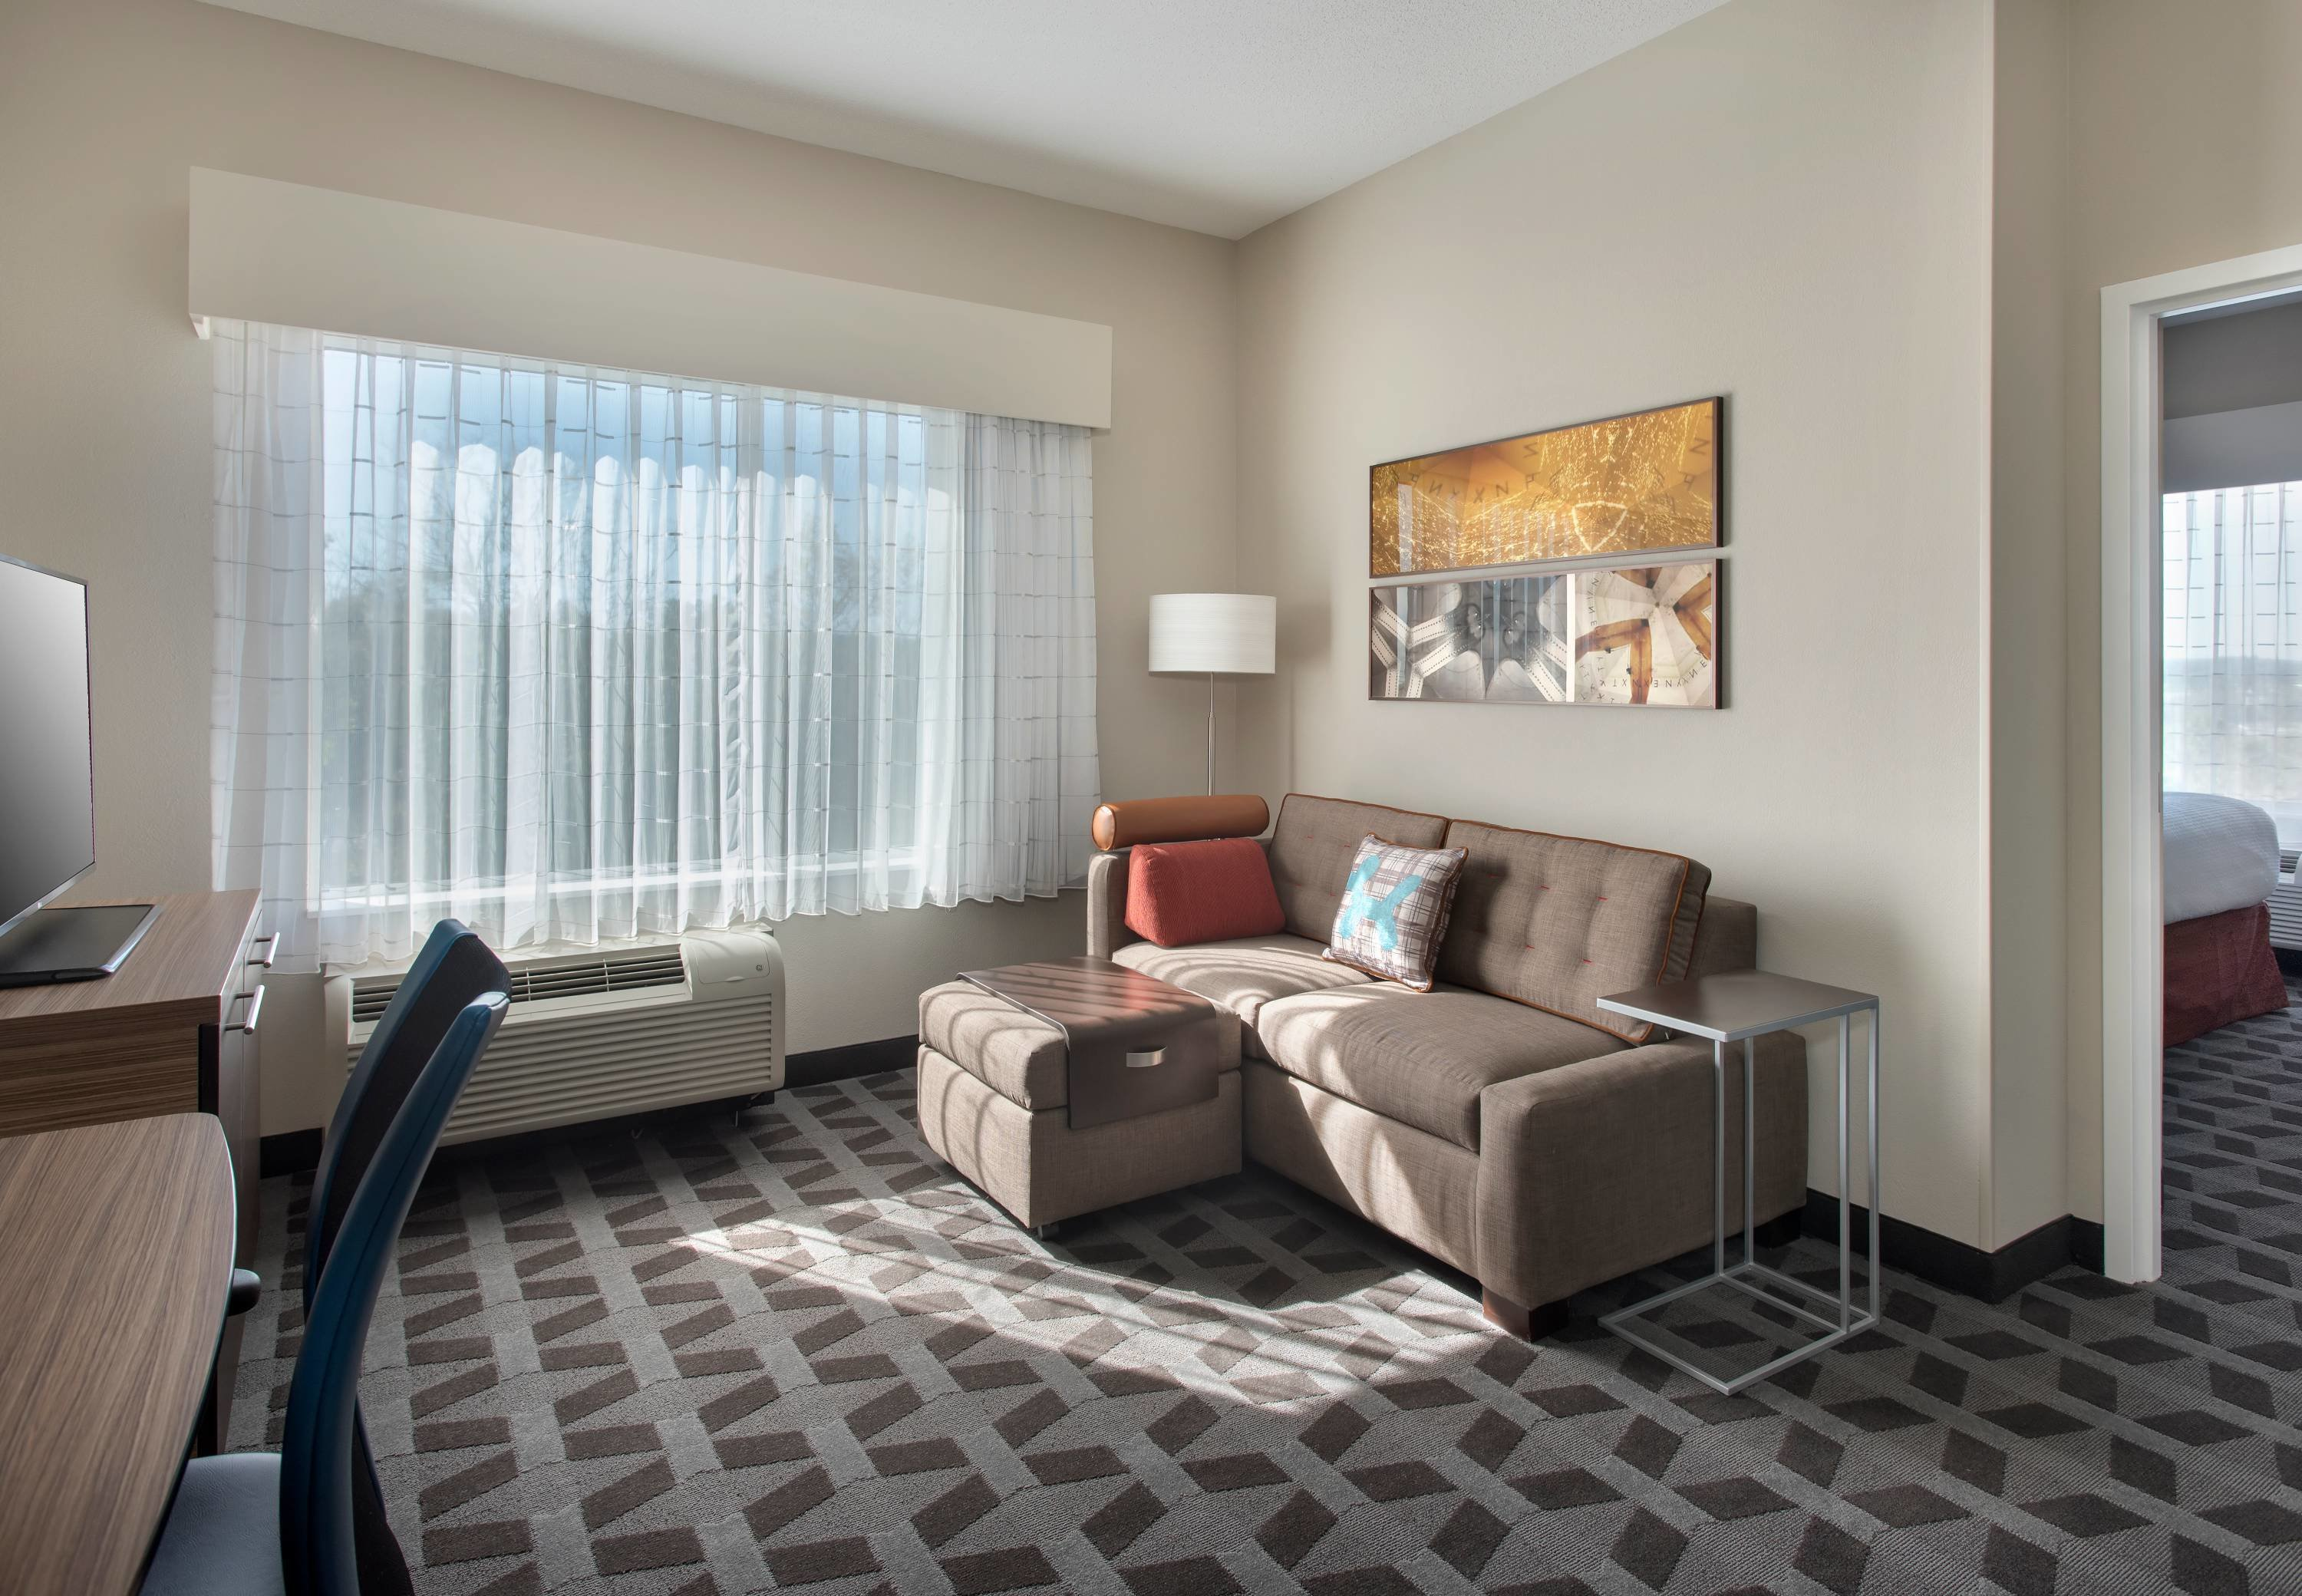 Best Hotels Goodlettsville Tennessee Towneplace Suites With Pictures